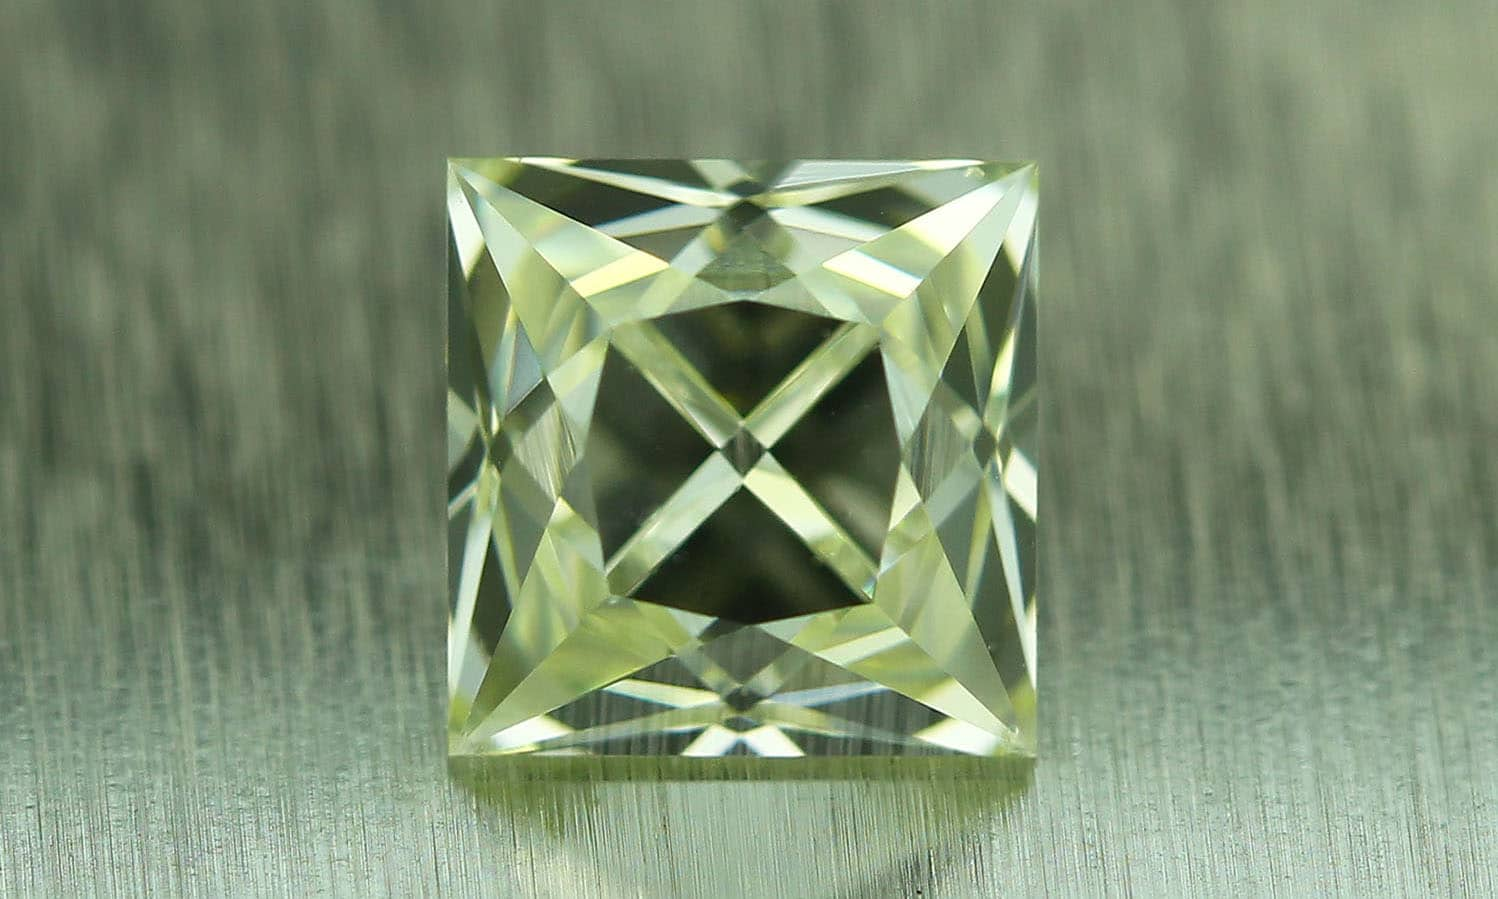 Yellowish French Cut Diamond 0.53 carat